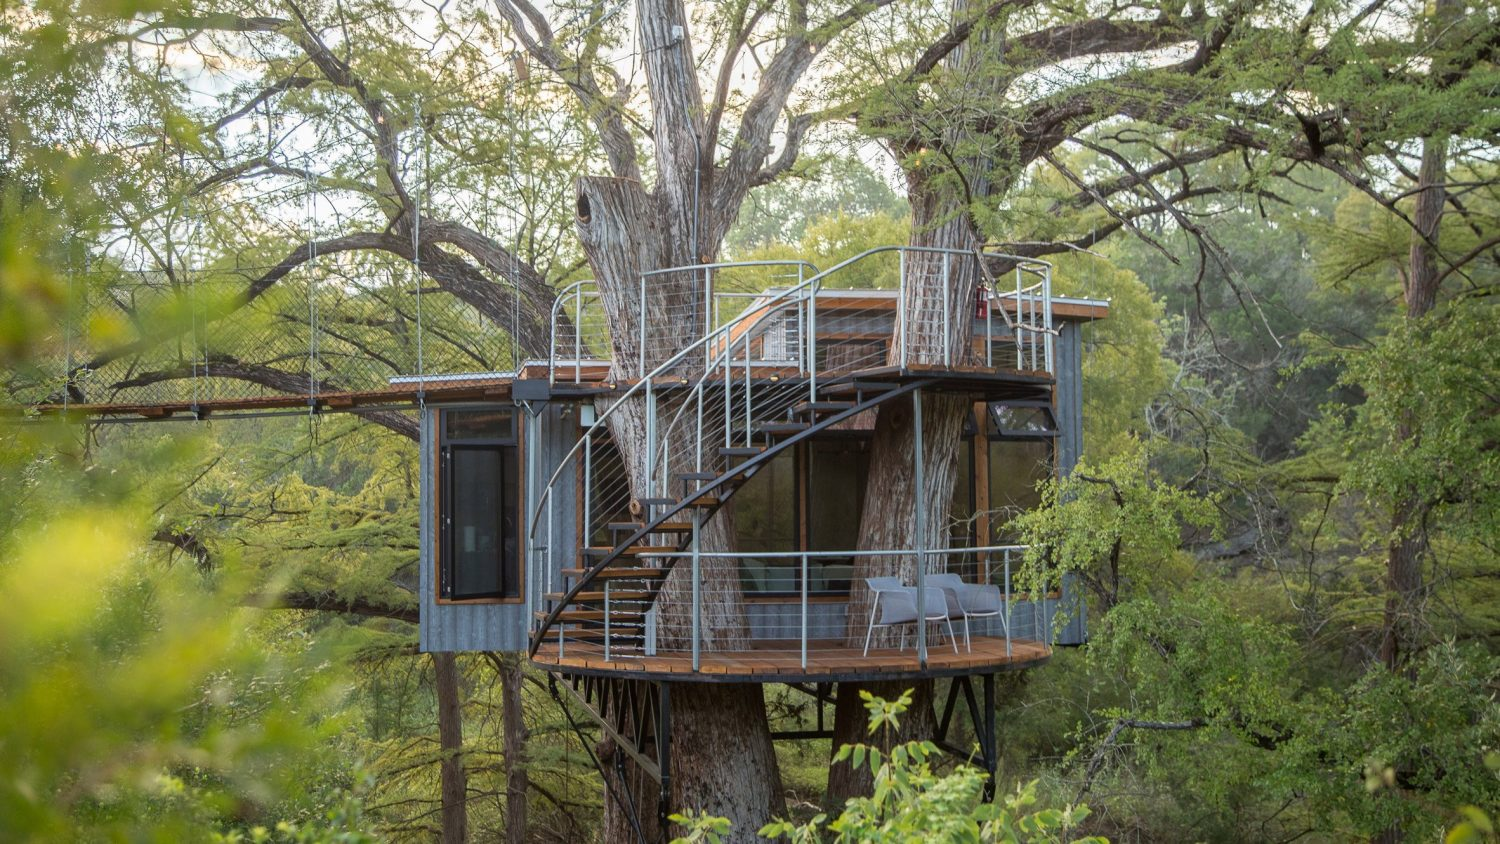 Yoki Treehouse by Will Beilharz of ArtisTree